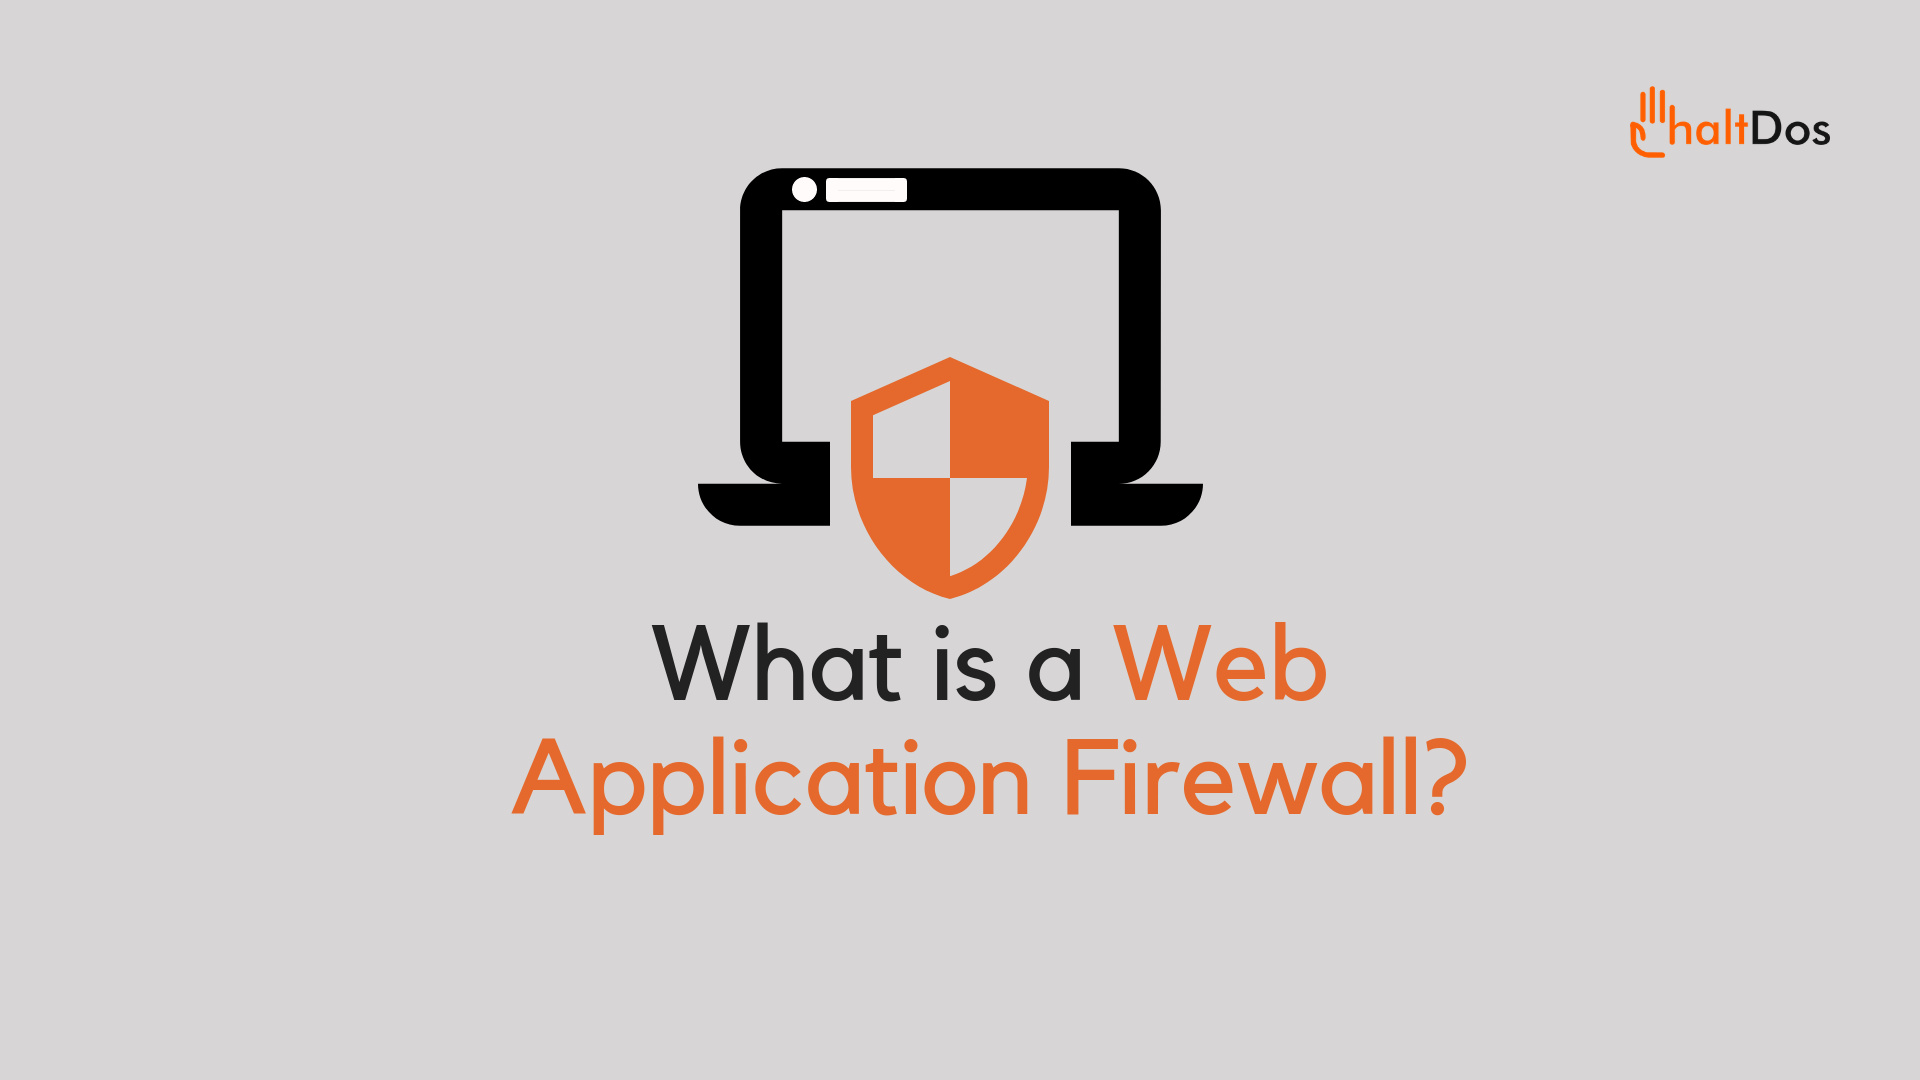 https://0201.nccdn.net/1_2/000/000/0db/e4a/Web-Application-Firewall-1920x1080.jpg